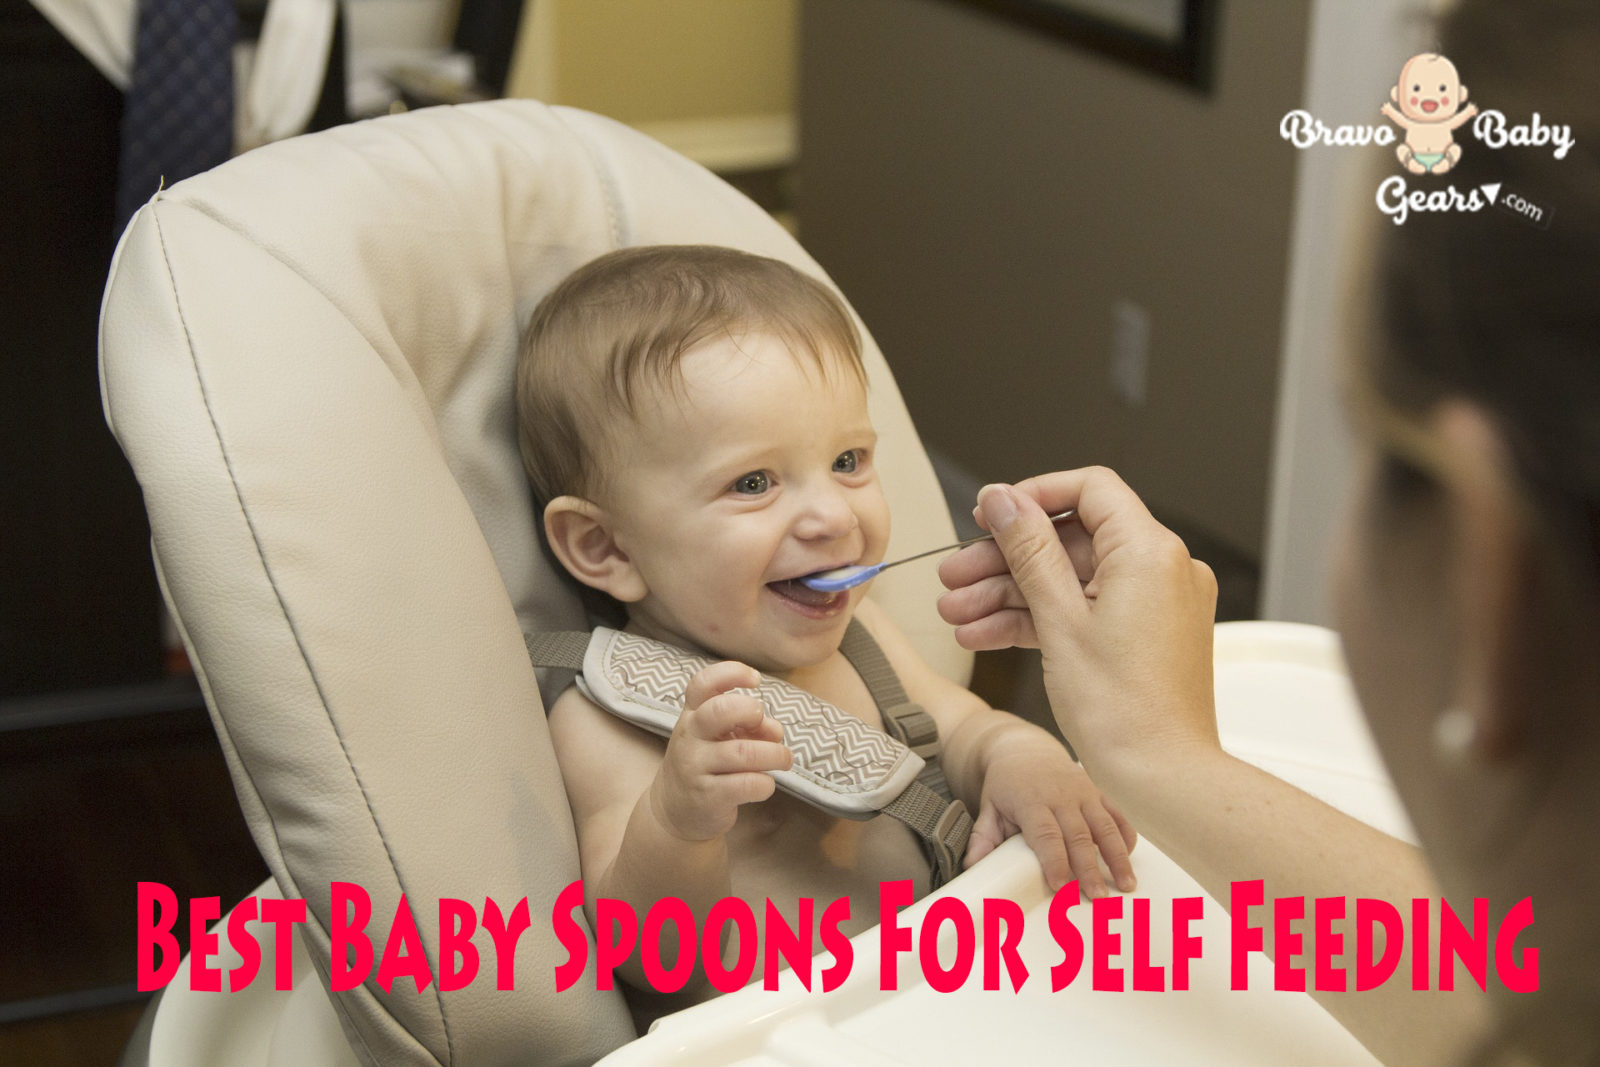 Best Baby Spoons For Self Feeding